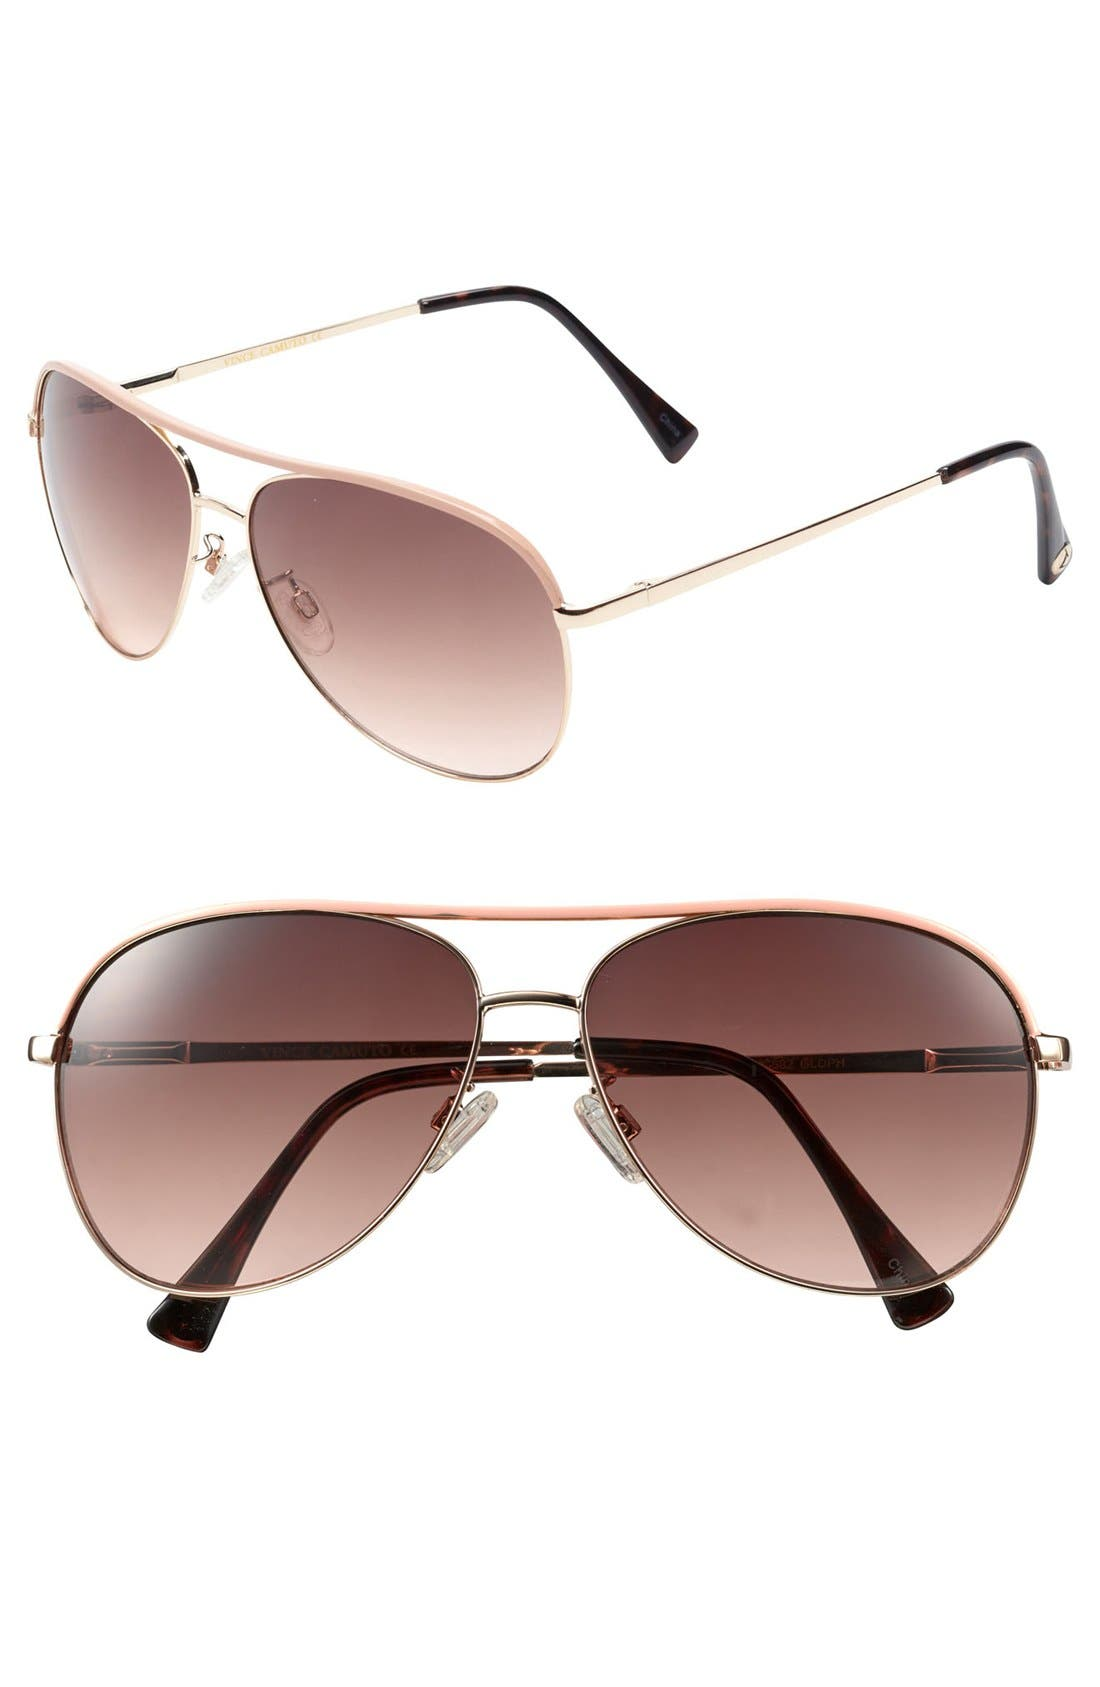 Main Image - Vince Camuto Metal 60mm Aviator Sunglasses (Online Only)